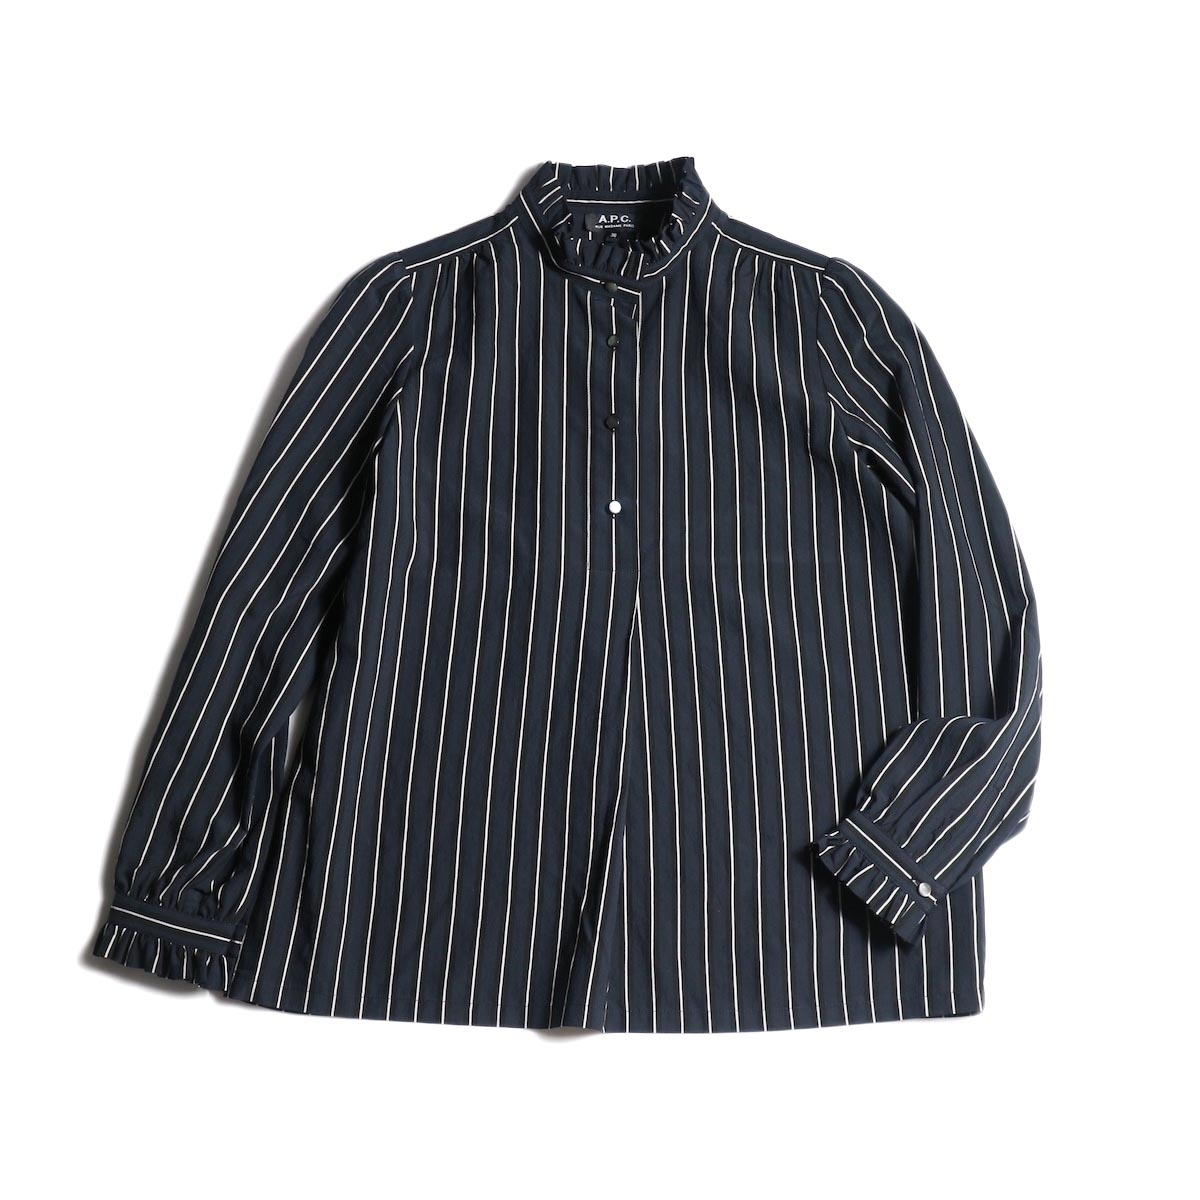 A.P.C. / St Germain ブラウス(Dk.Navy)